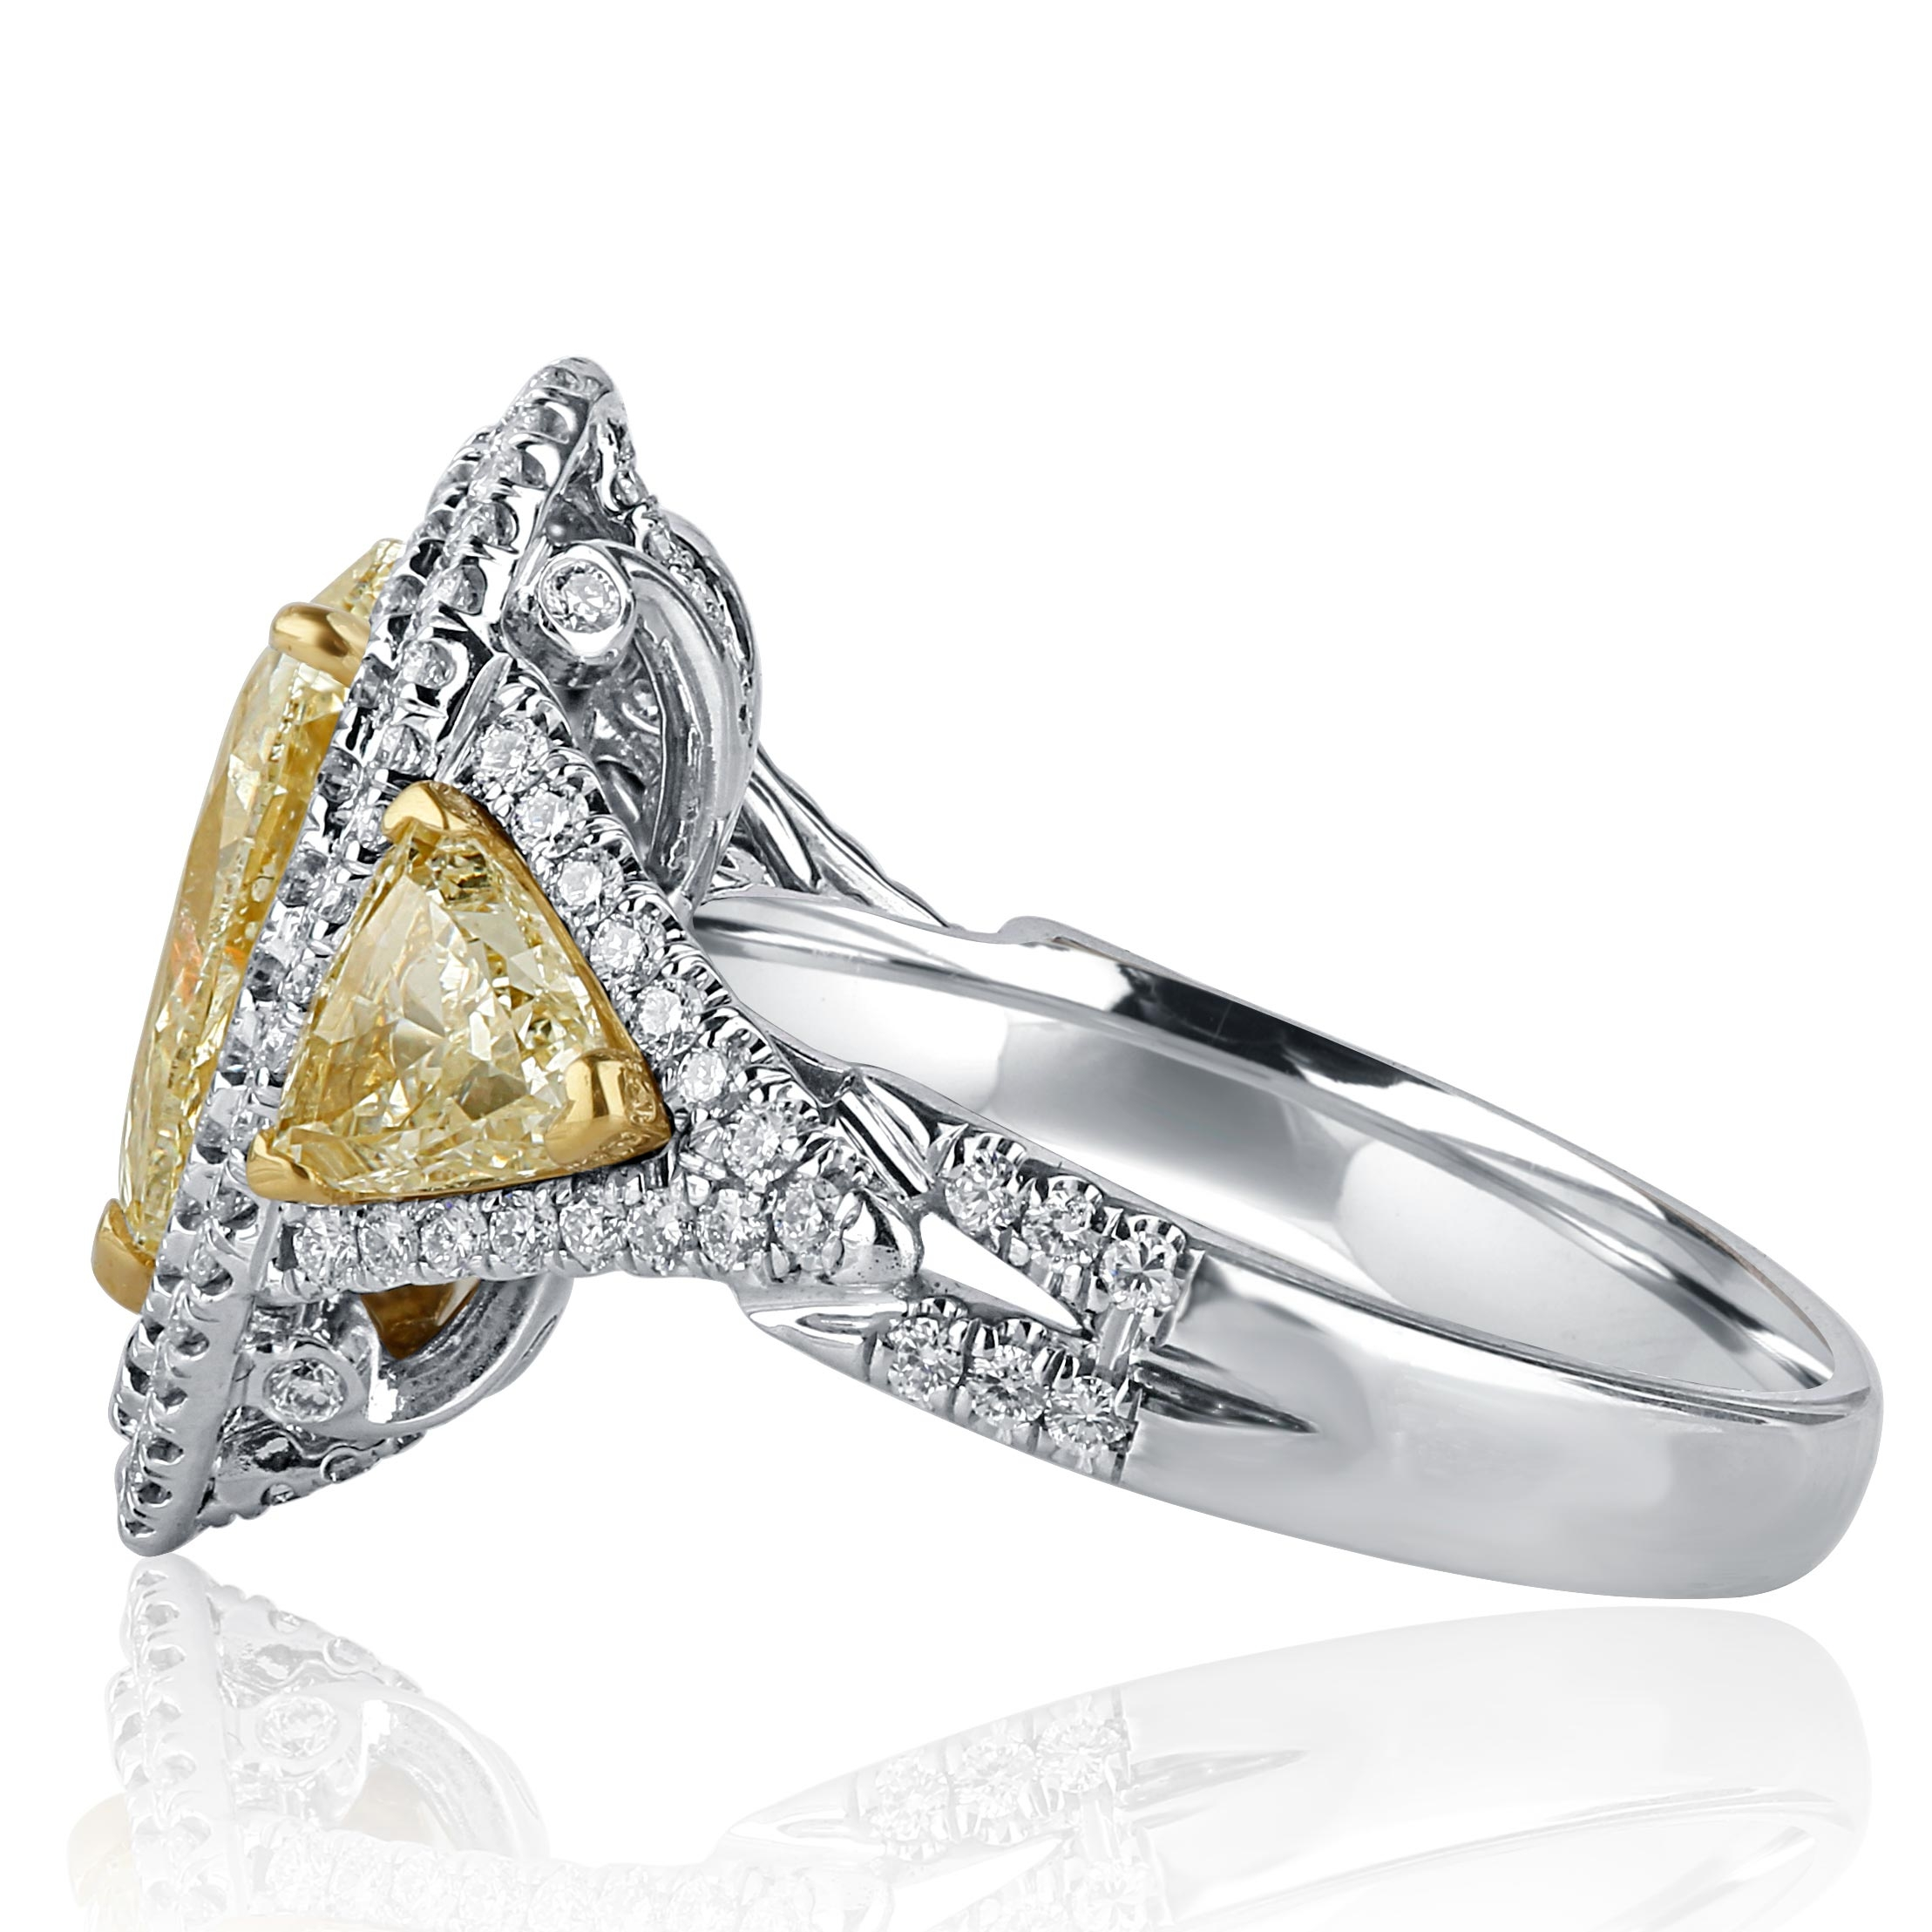 white cut gold center engagement about details diamond pear earrings ring trillion carat stone itm yellow shaped specs